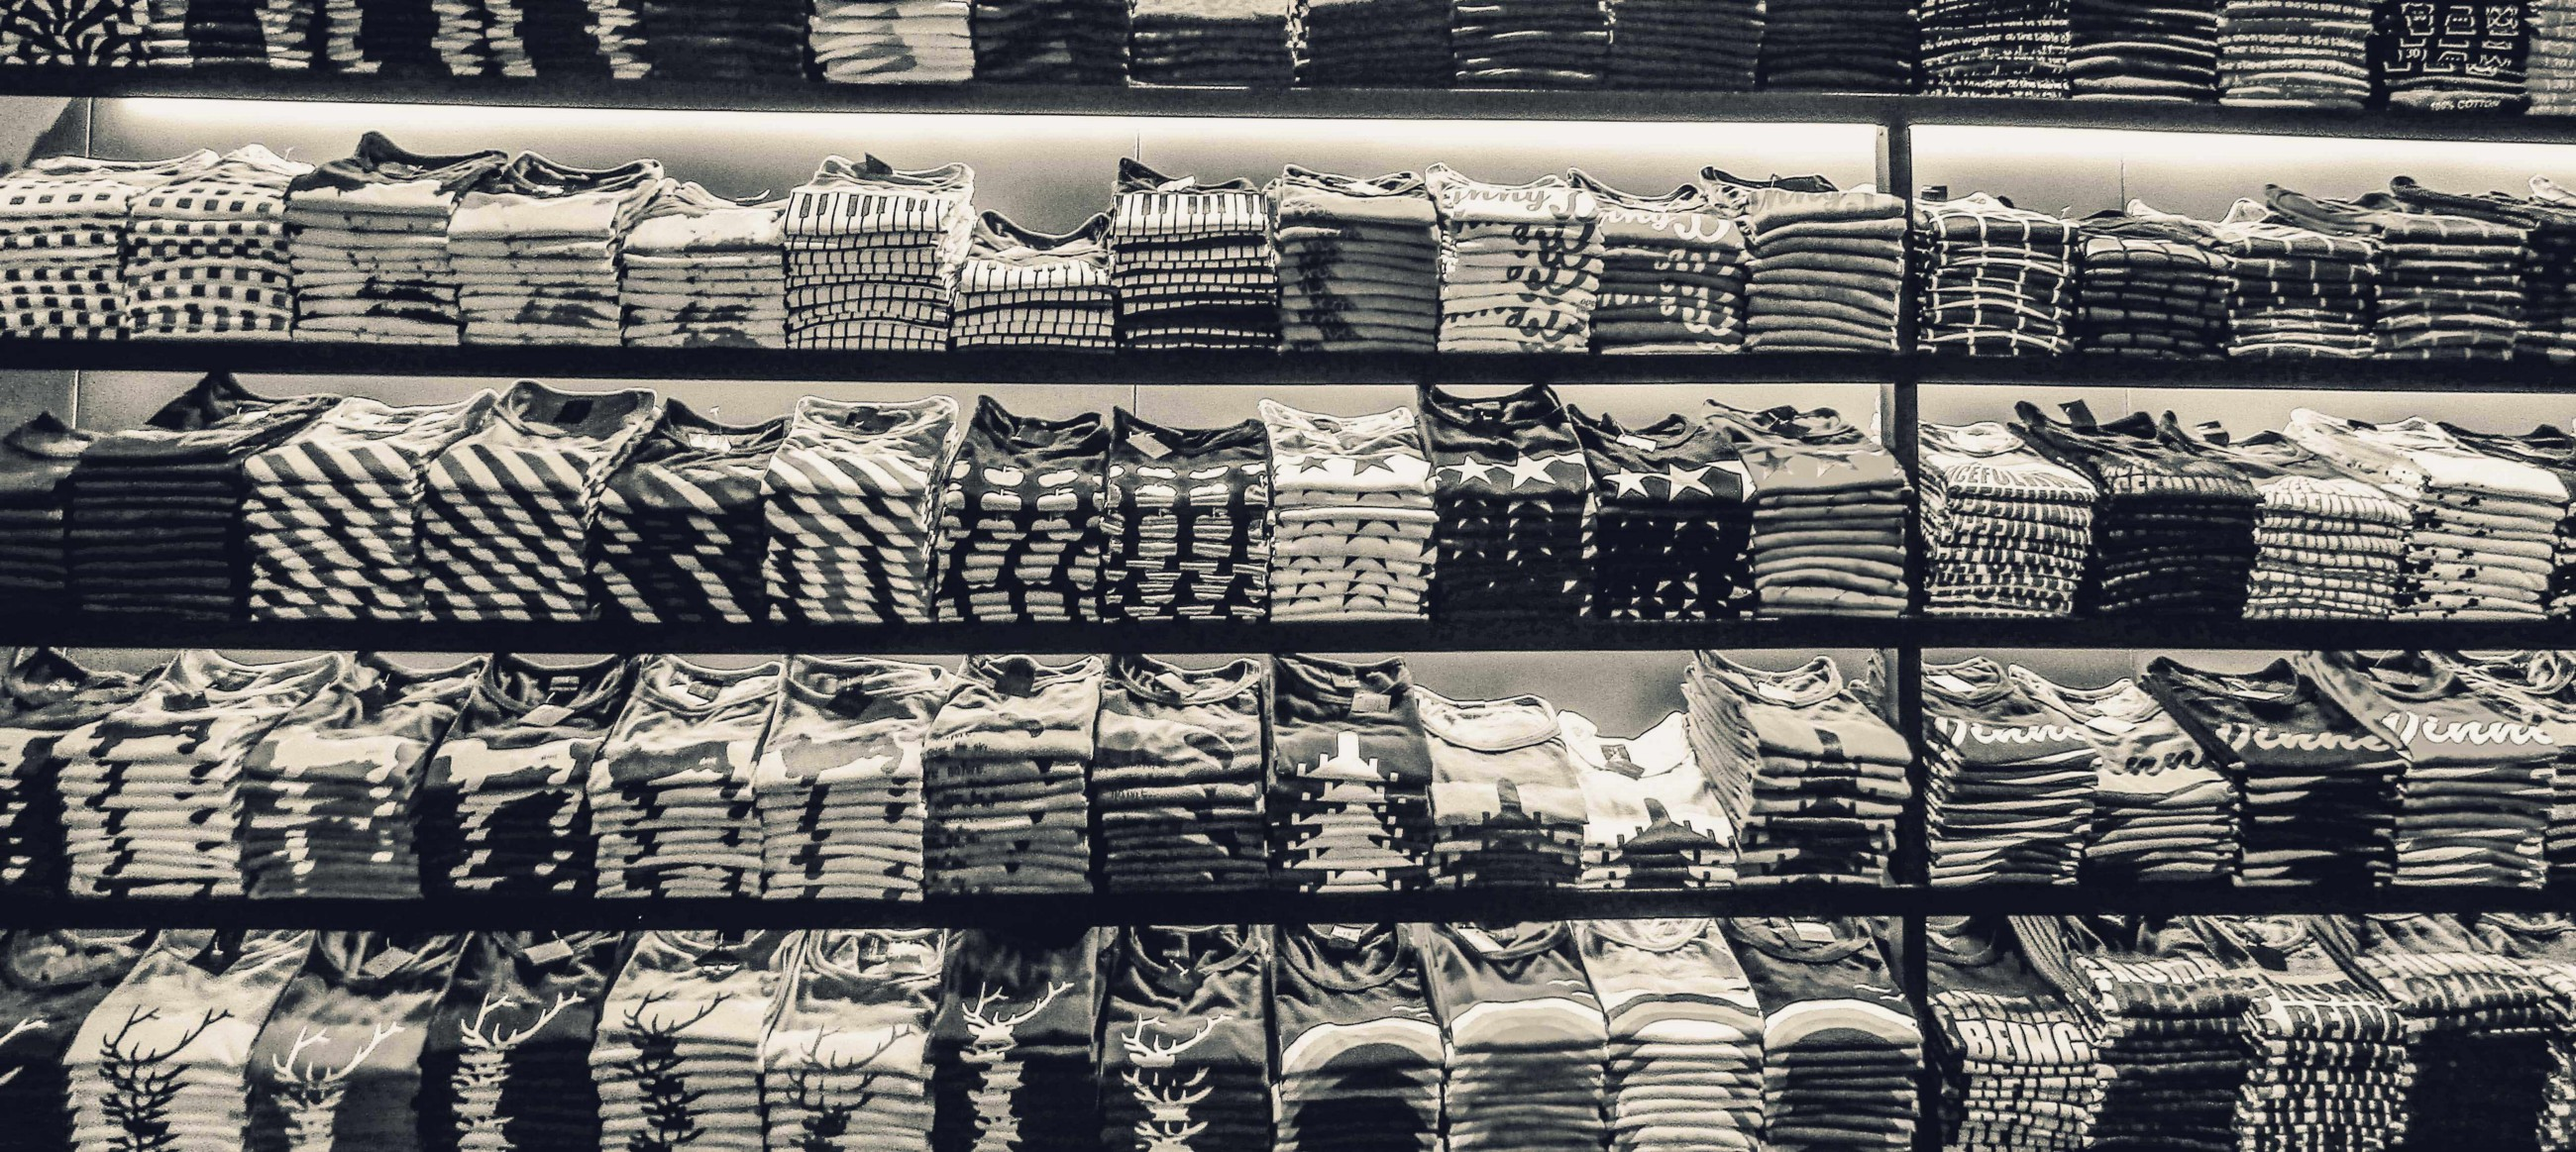 We Need to Stop Buying Fast Fashion